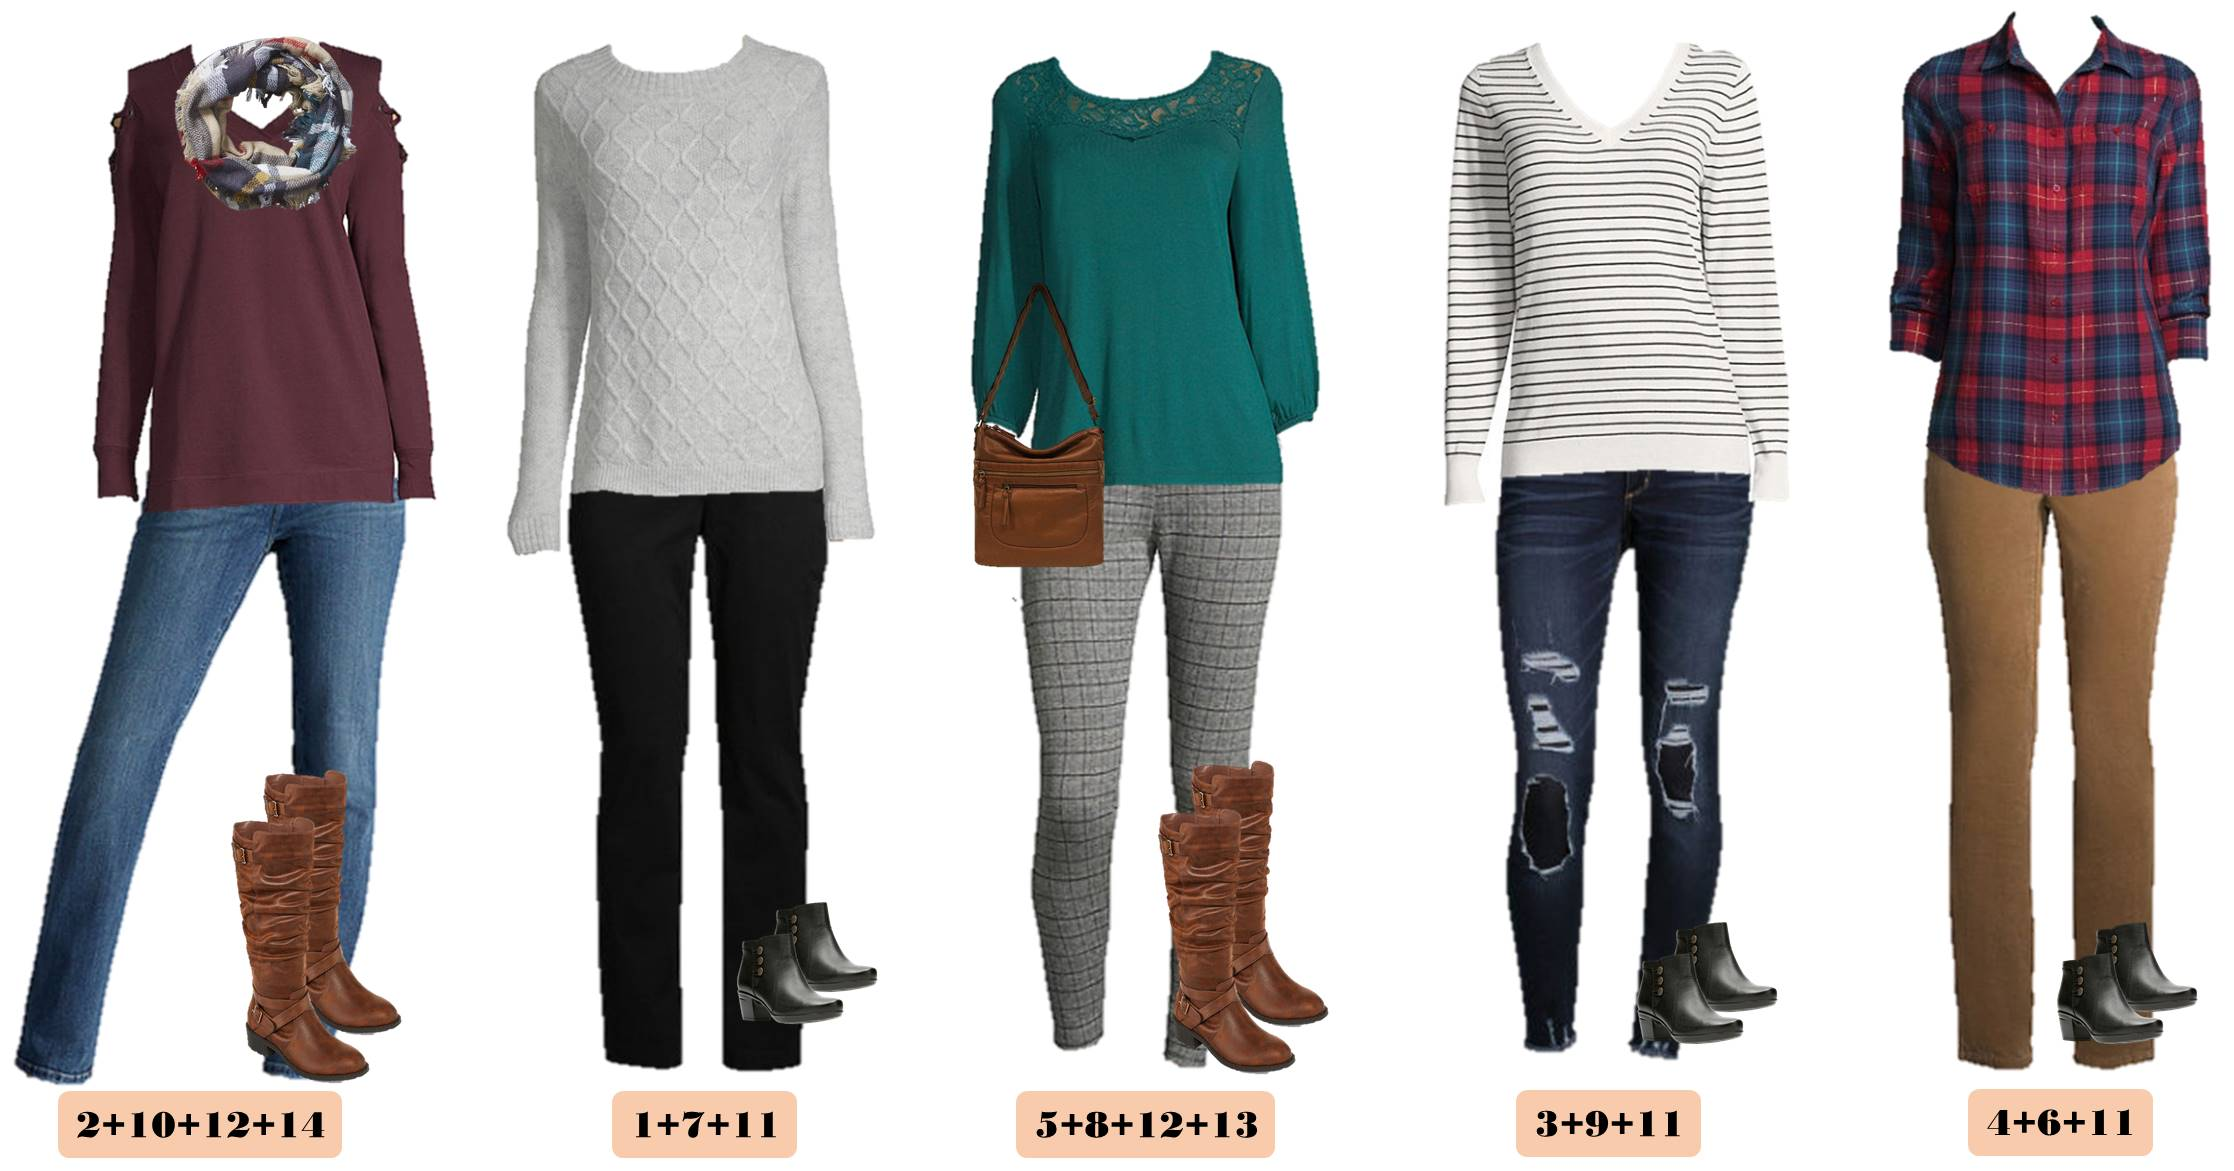 fall casual outfits - sweaters, plaids, leggings, jeans